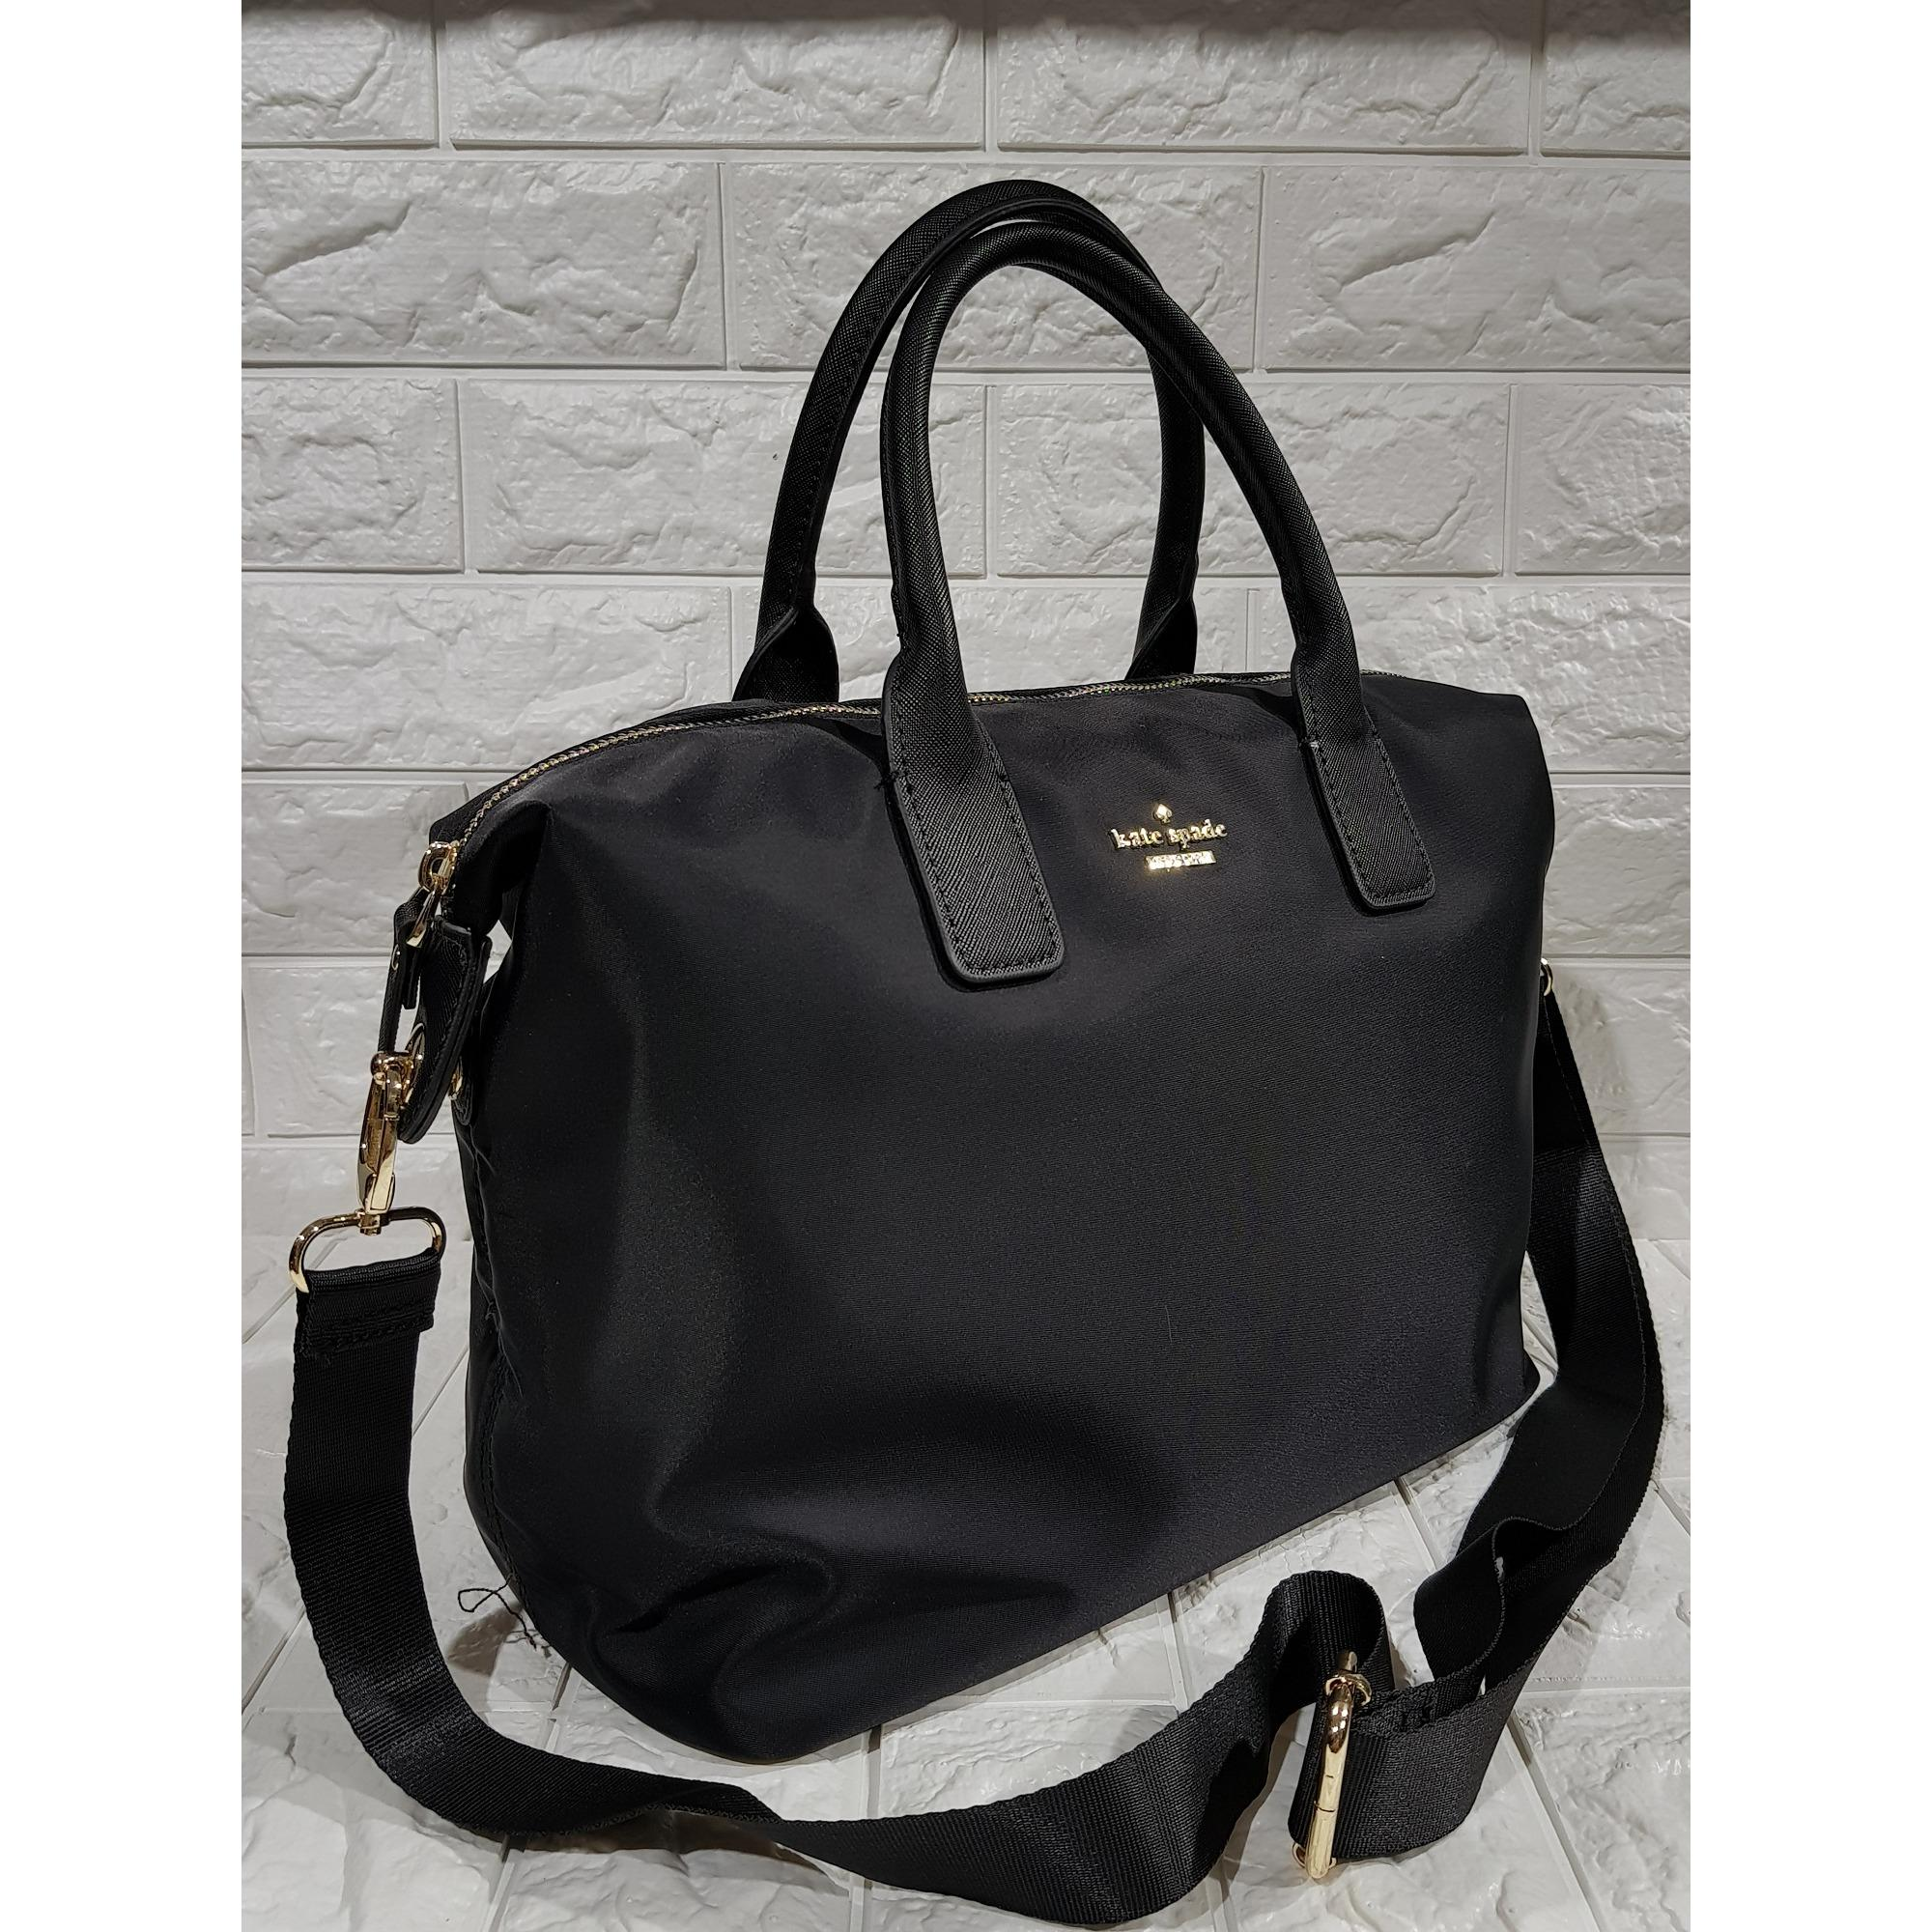 45b5c8abeae6 Kate Spade Philippines - Kate Spade Bag for Women for sale - prices ...